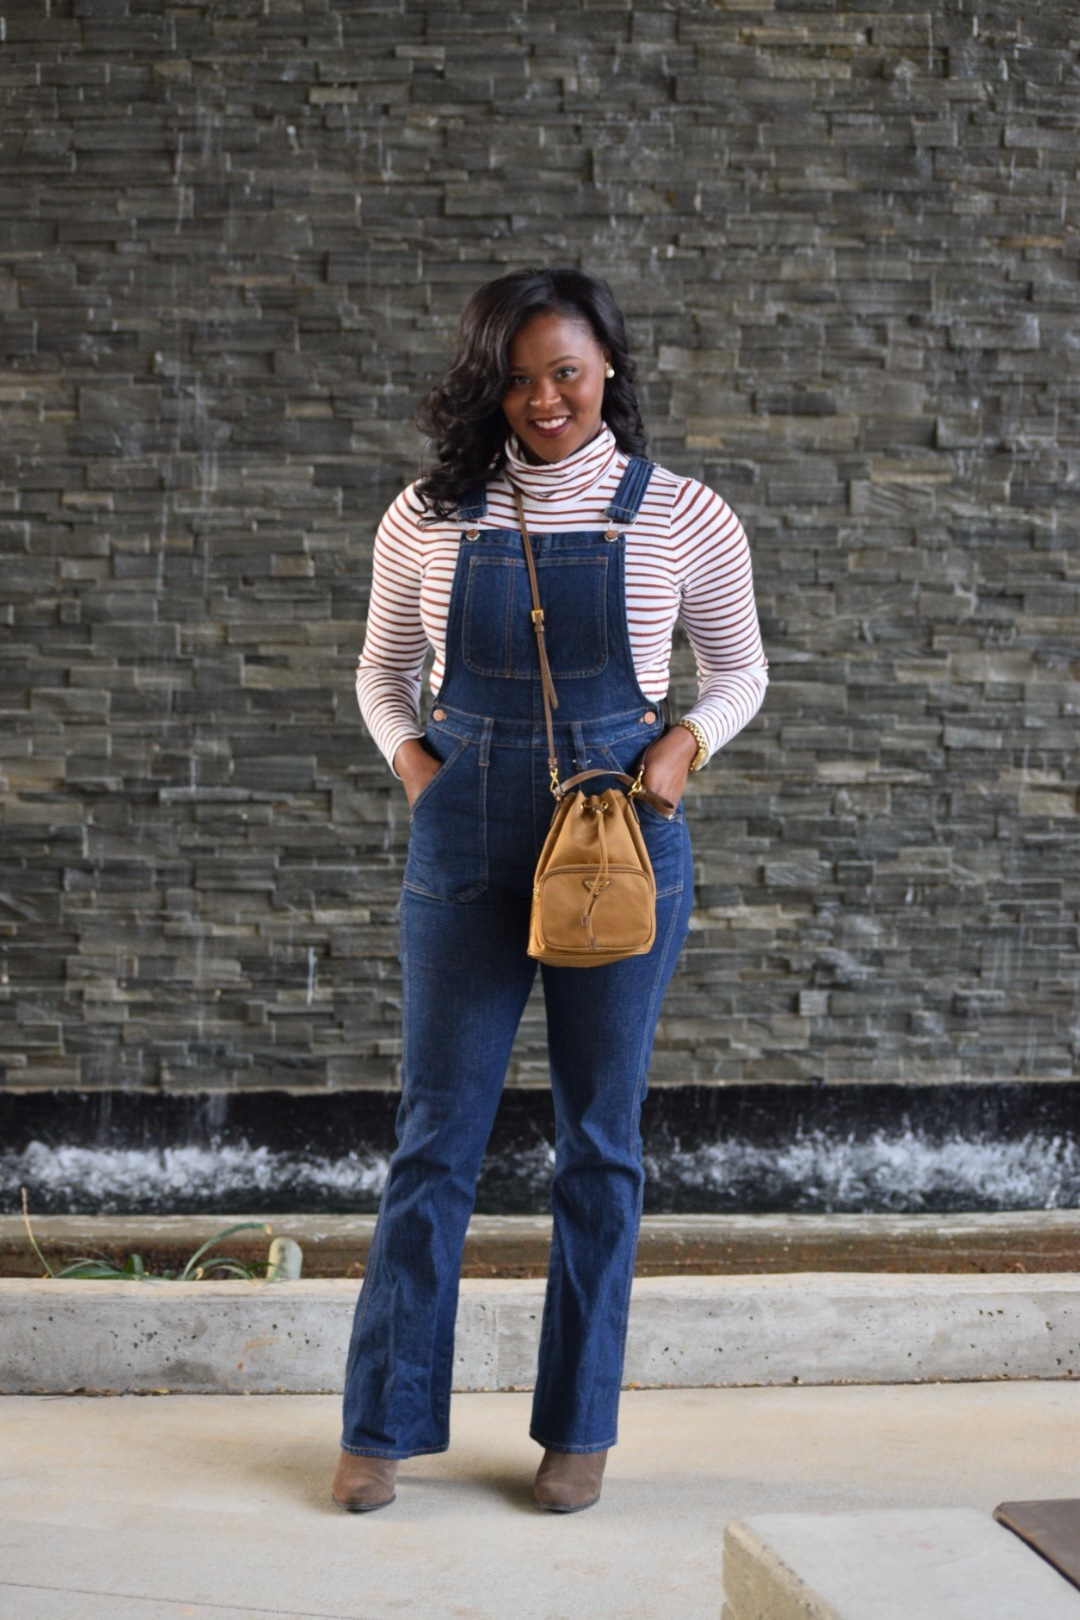 Madewell Flare Overalls (old, similar  here ,  here ); J Crew Turtleneck ( here ), Prada Purse (old), Nine West Boots (old, similar  here )